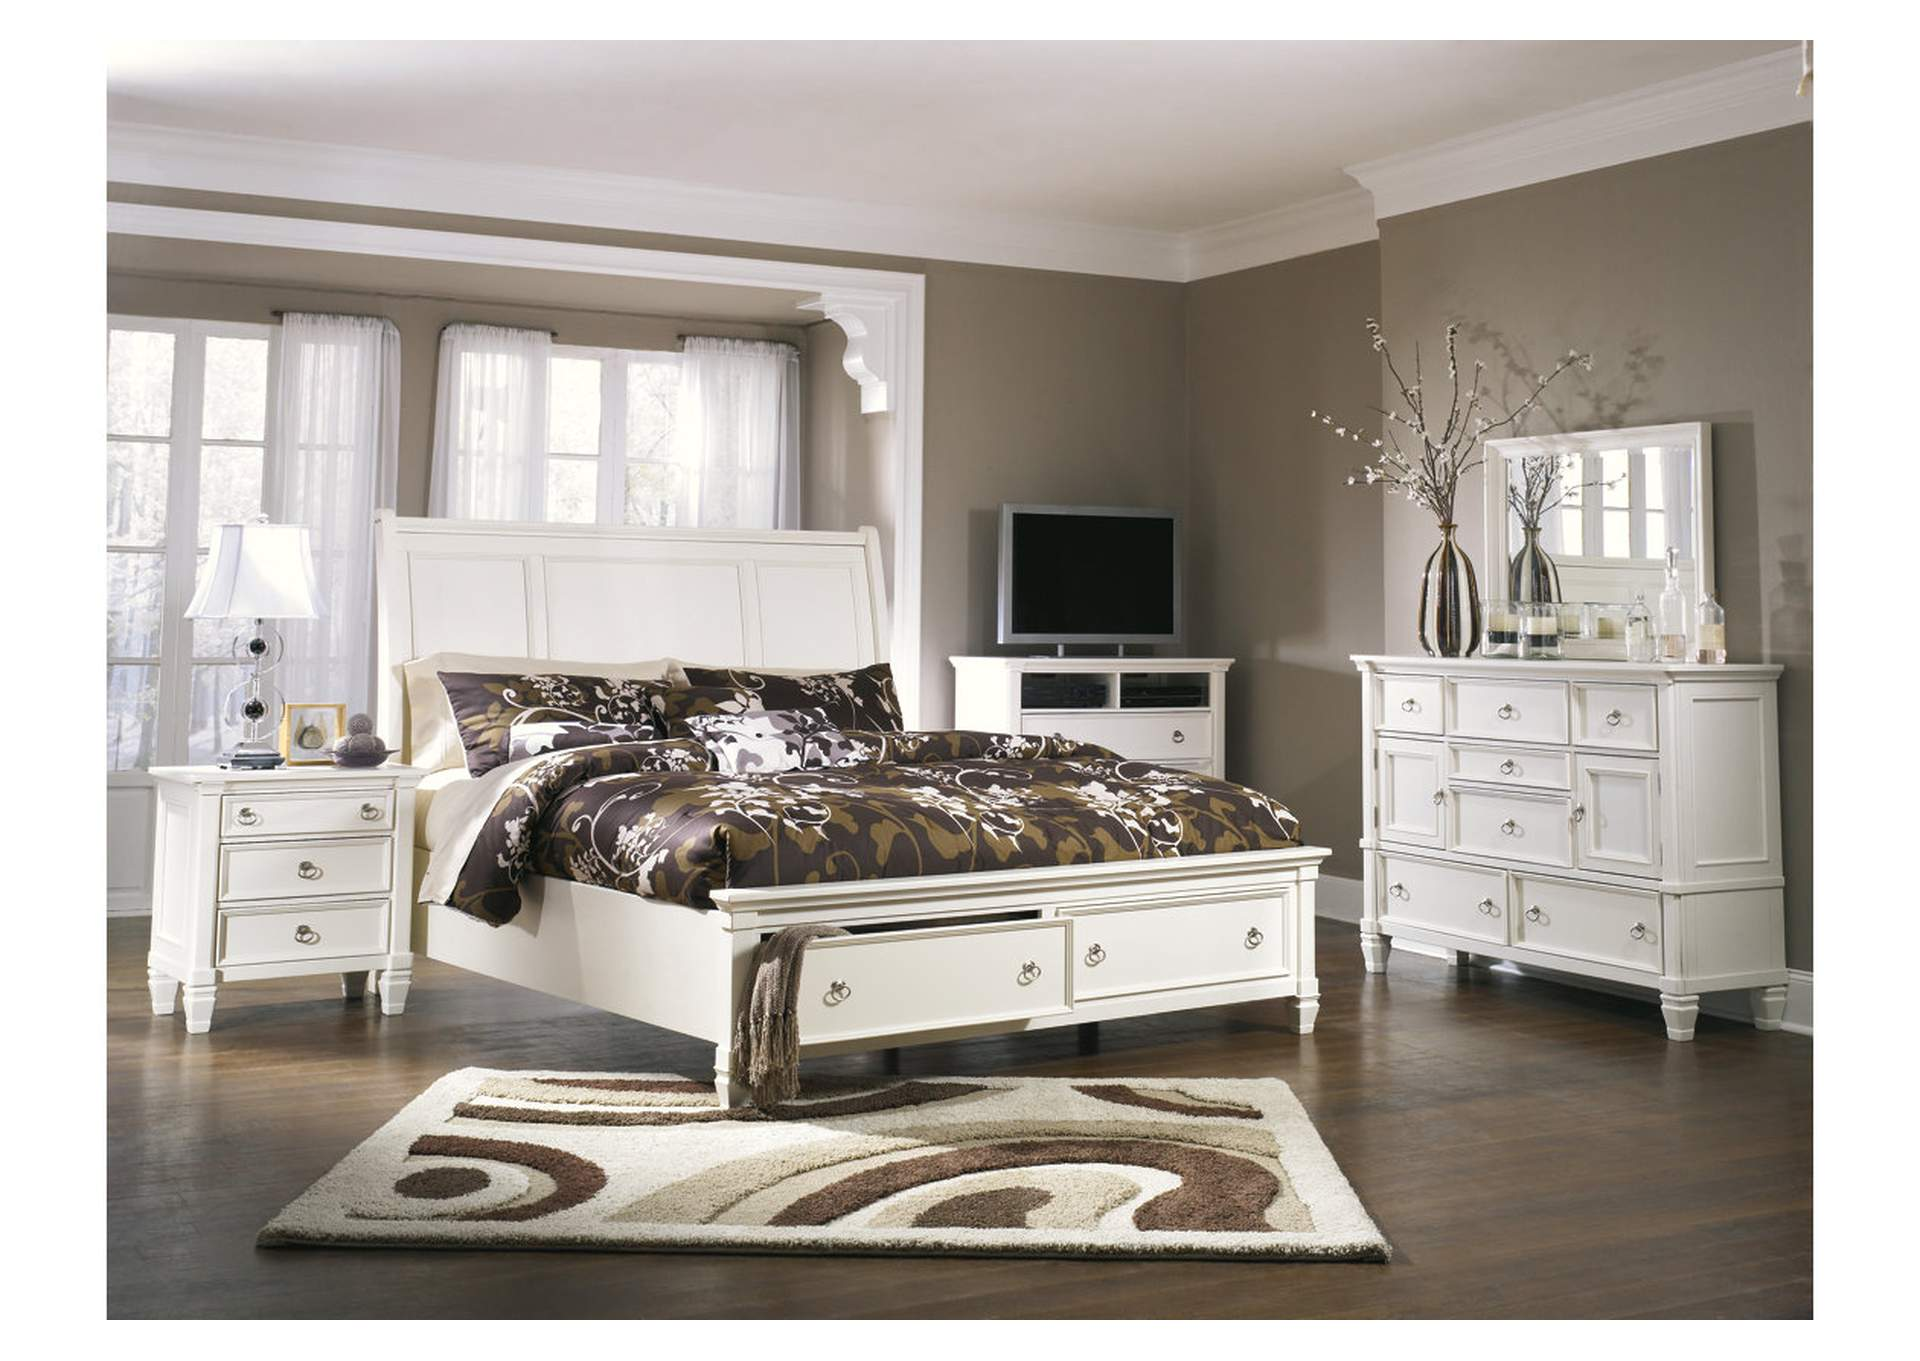 Prentice White California King Storage Sleigh Bed, Dresser & Mirror,Millennium